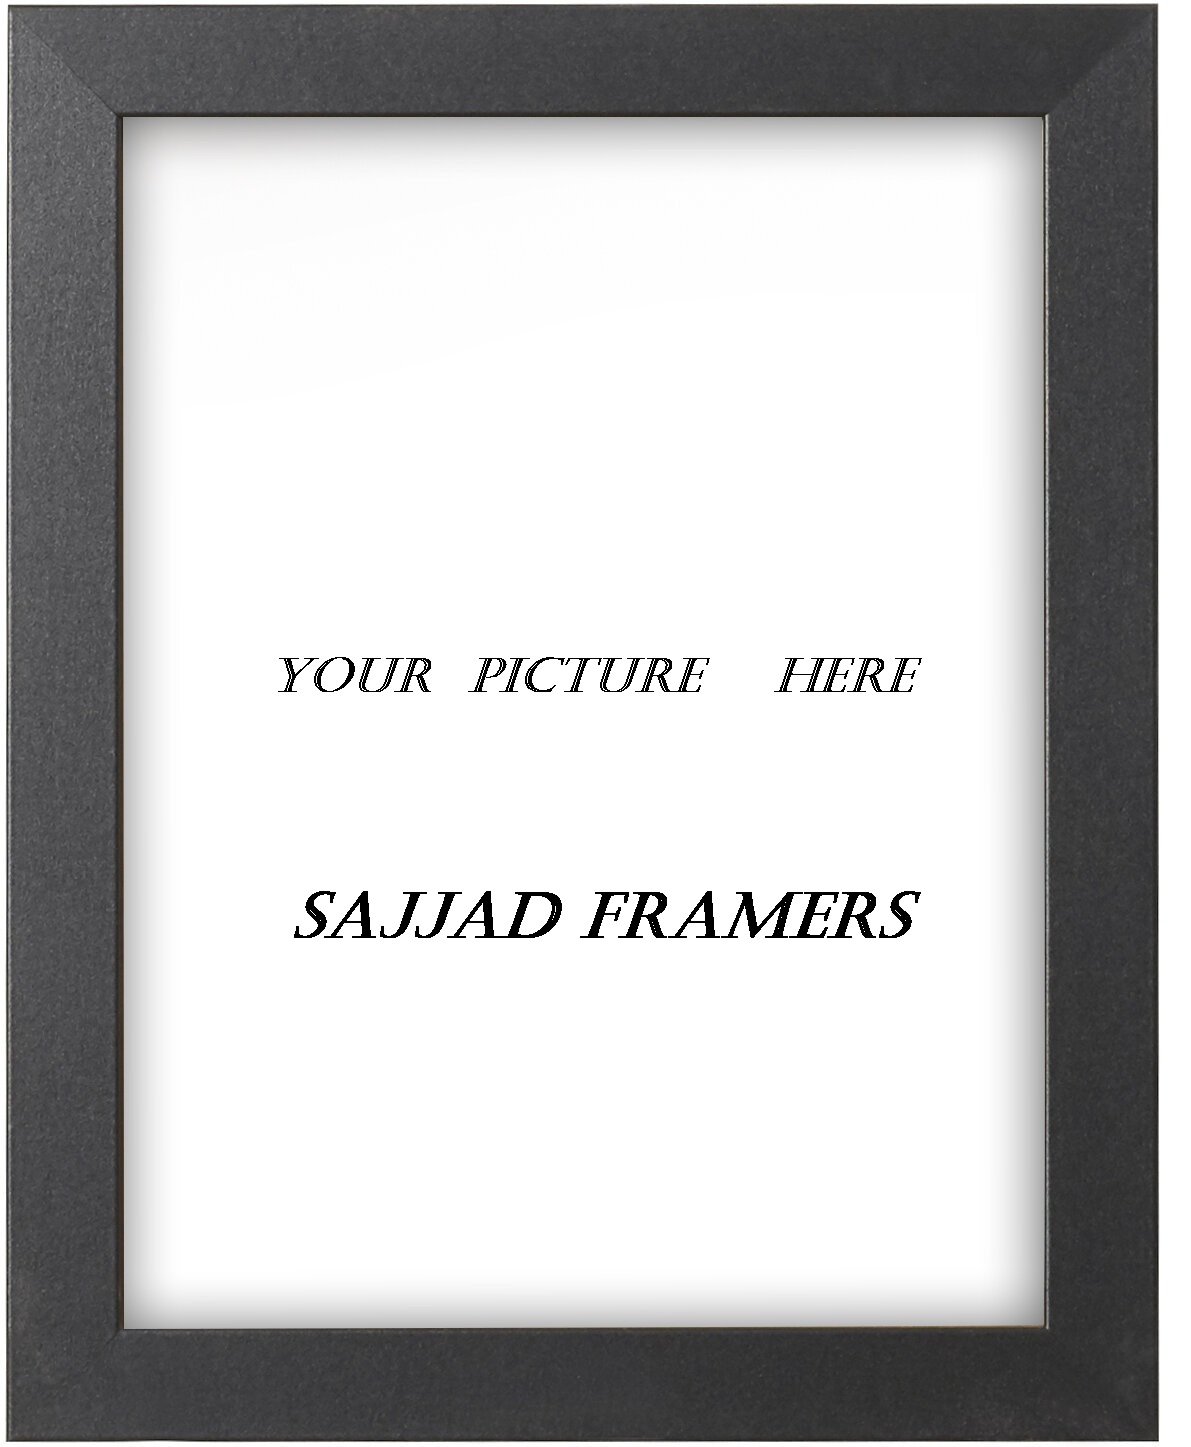 SAJJAD FRAMERS  picture frame a4 size foto plain frame you can add your own picture or  can tell us to add ur picture for FREE WALL DECOR